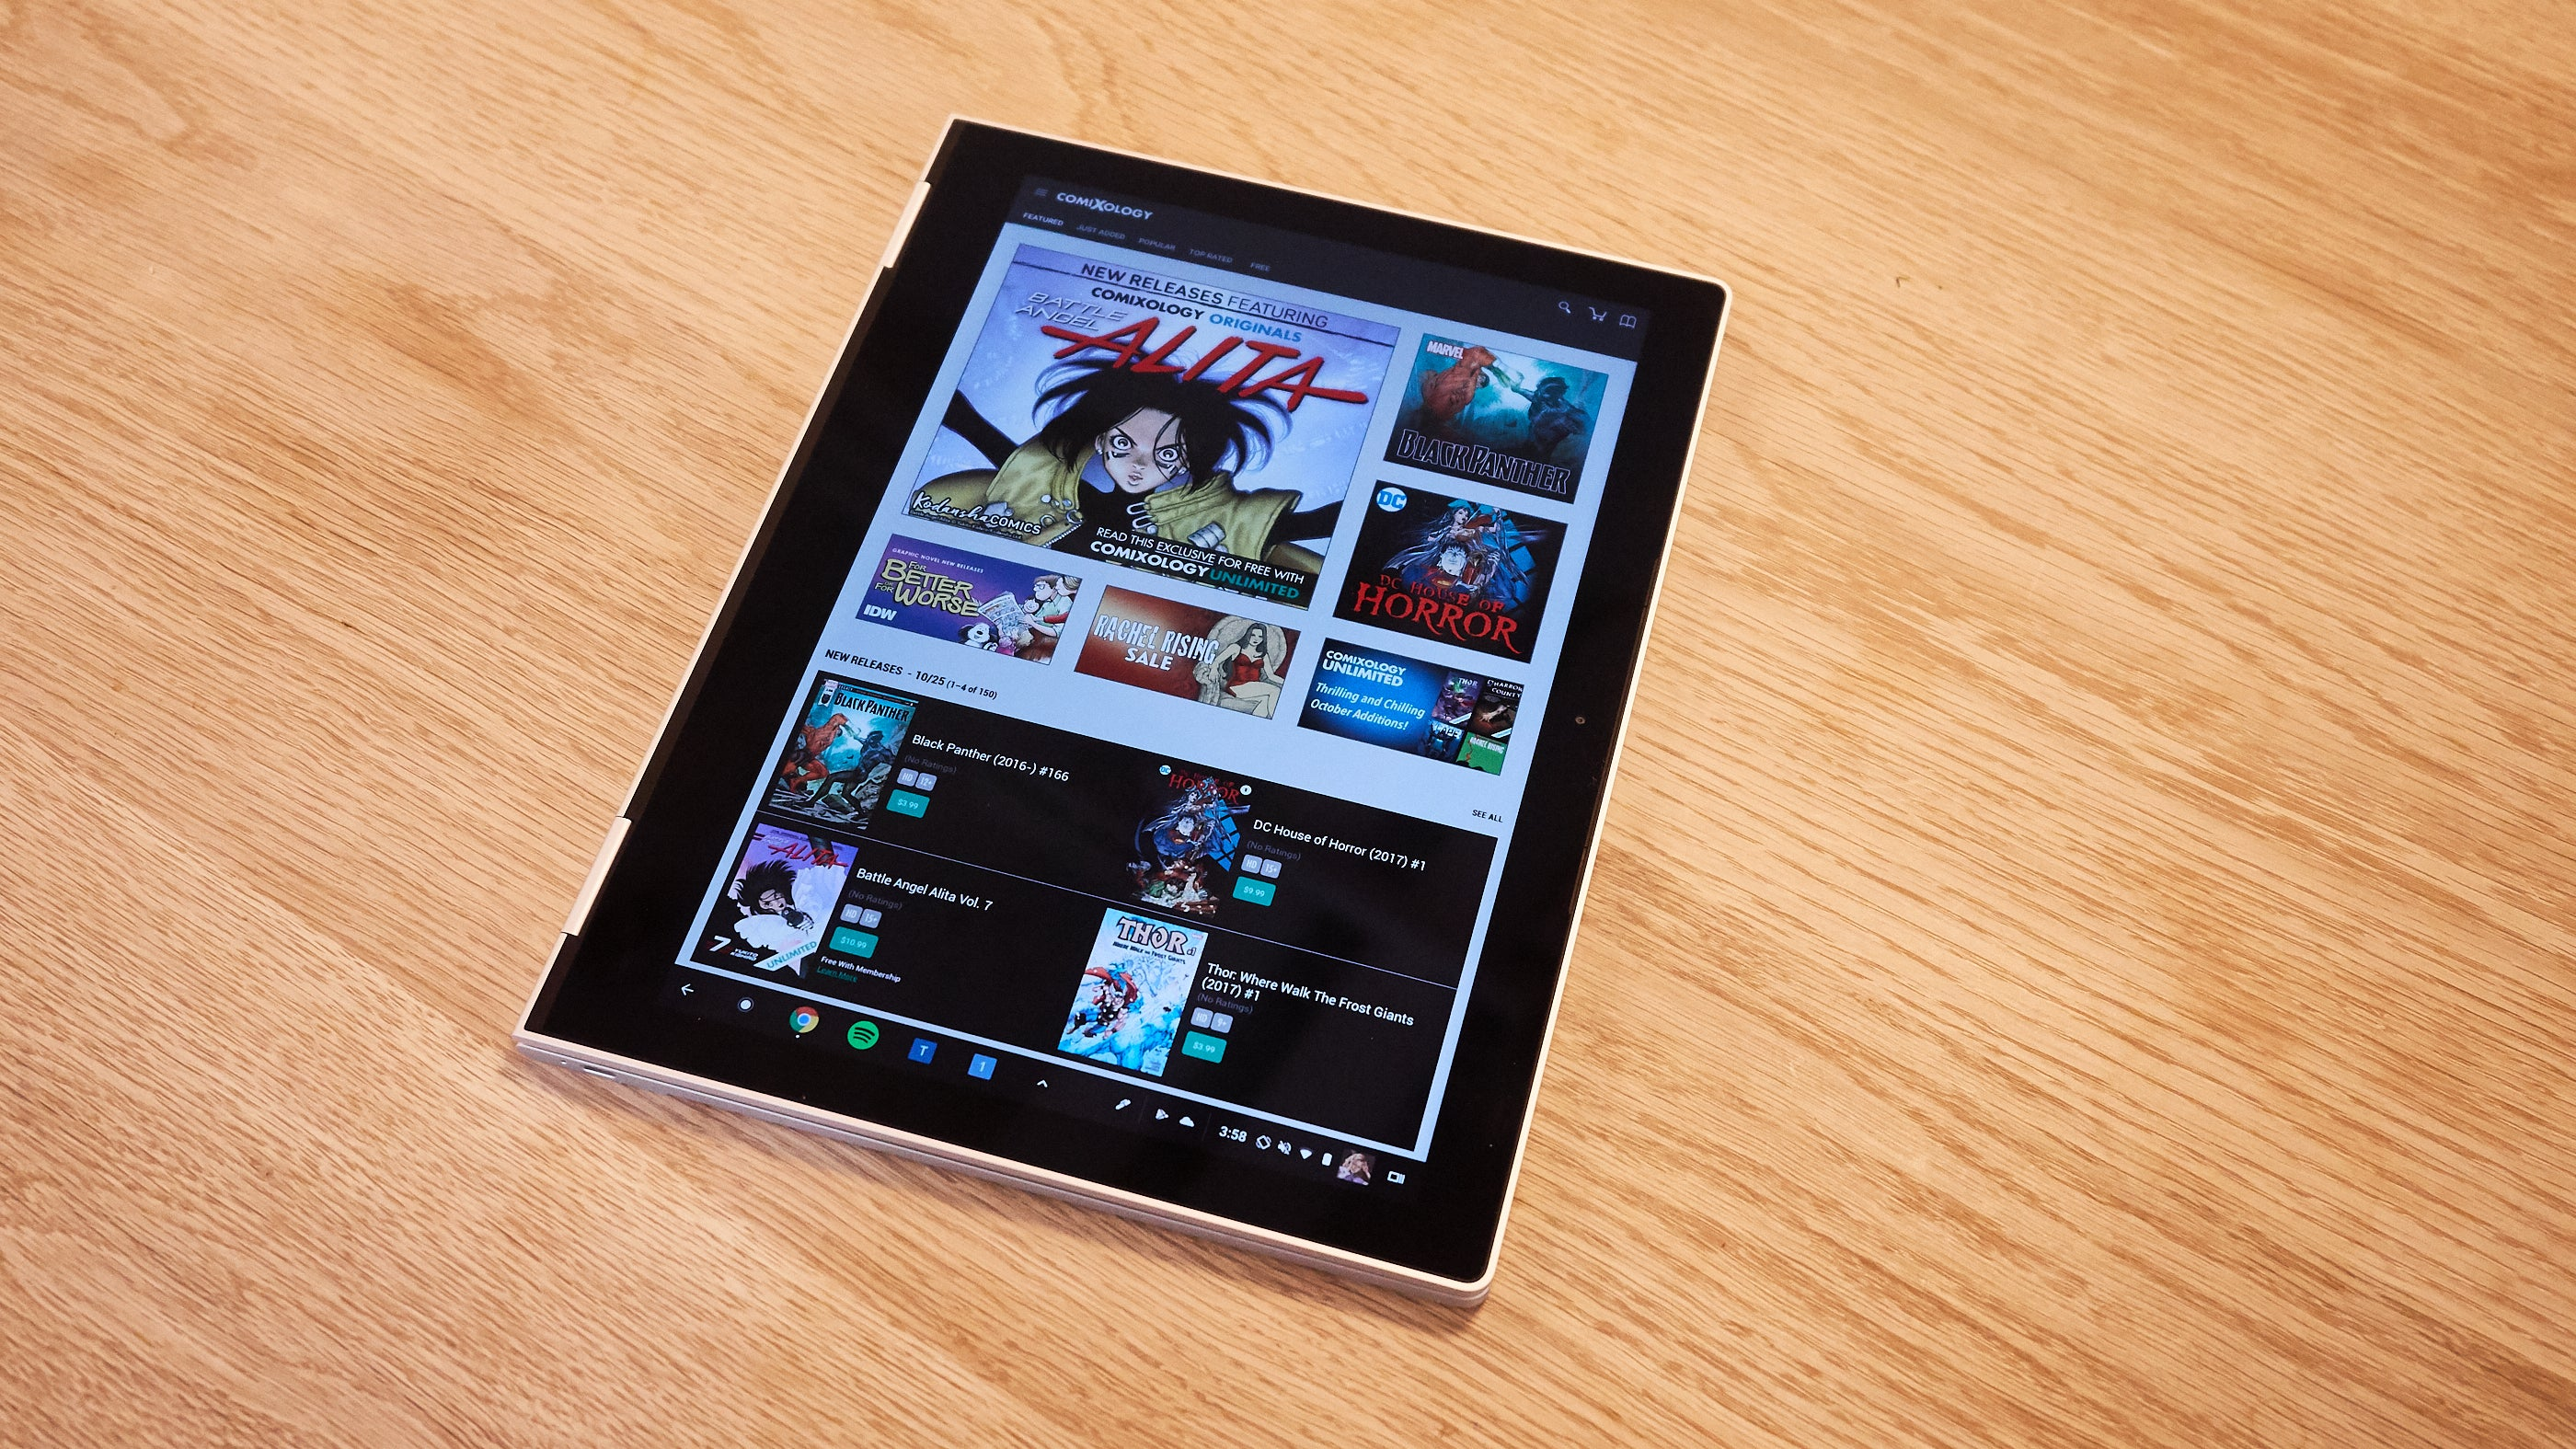 Chrome OS, Not Android, Is Probably The Future Of Google Tablets